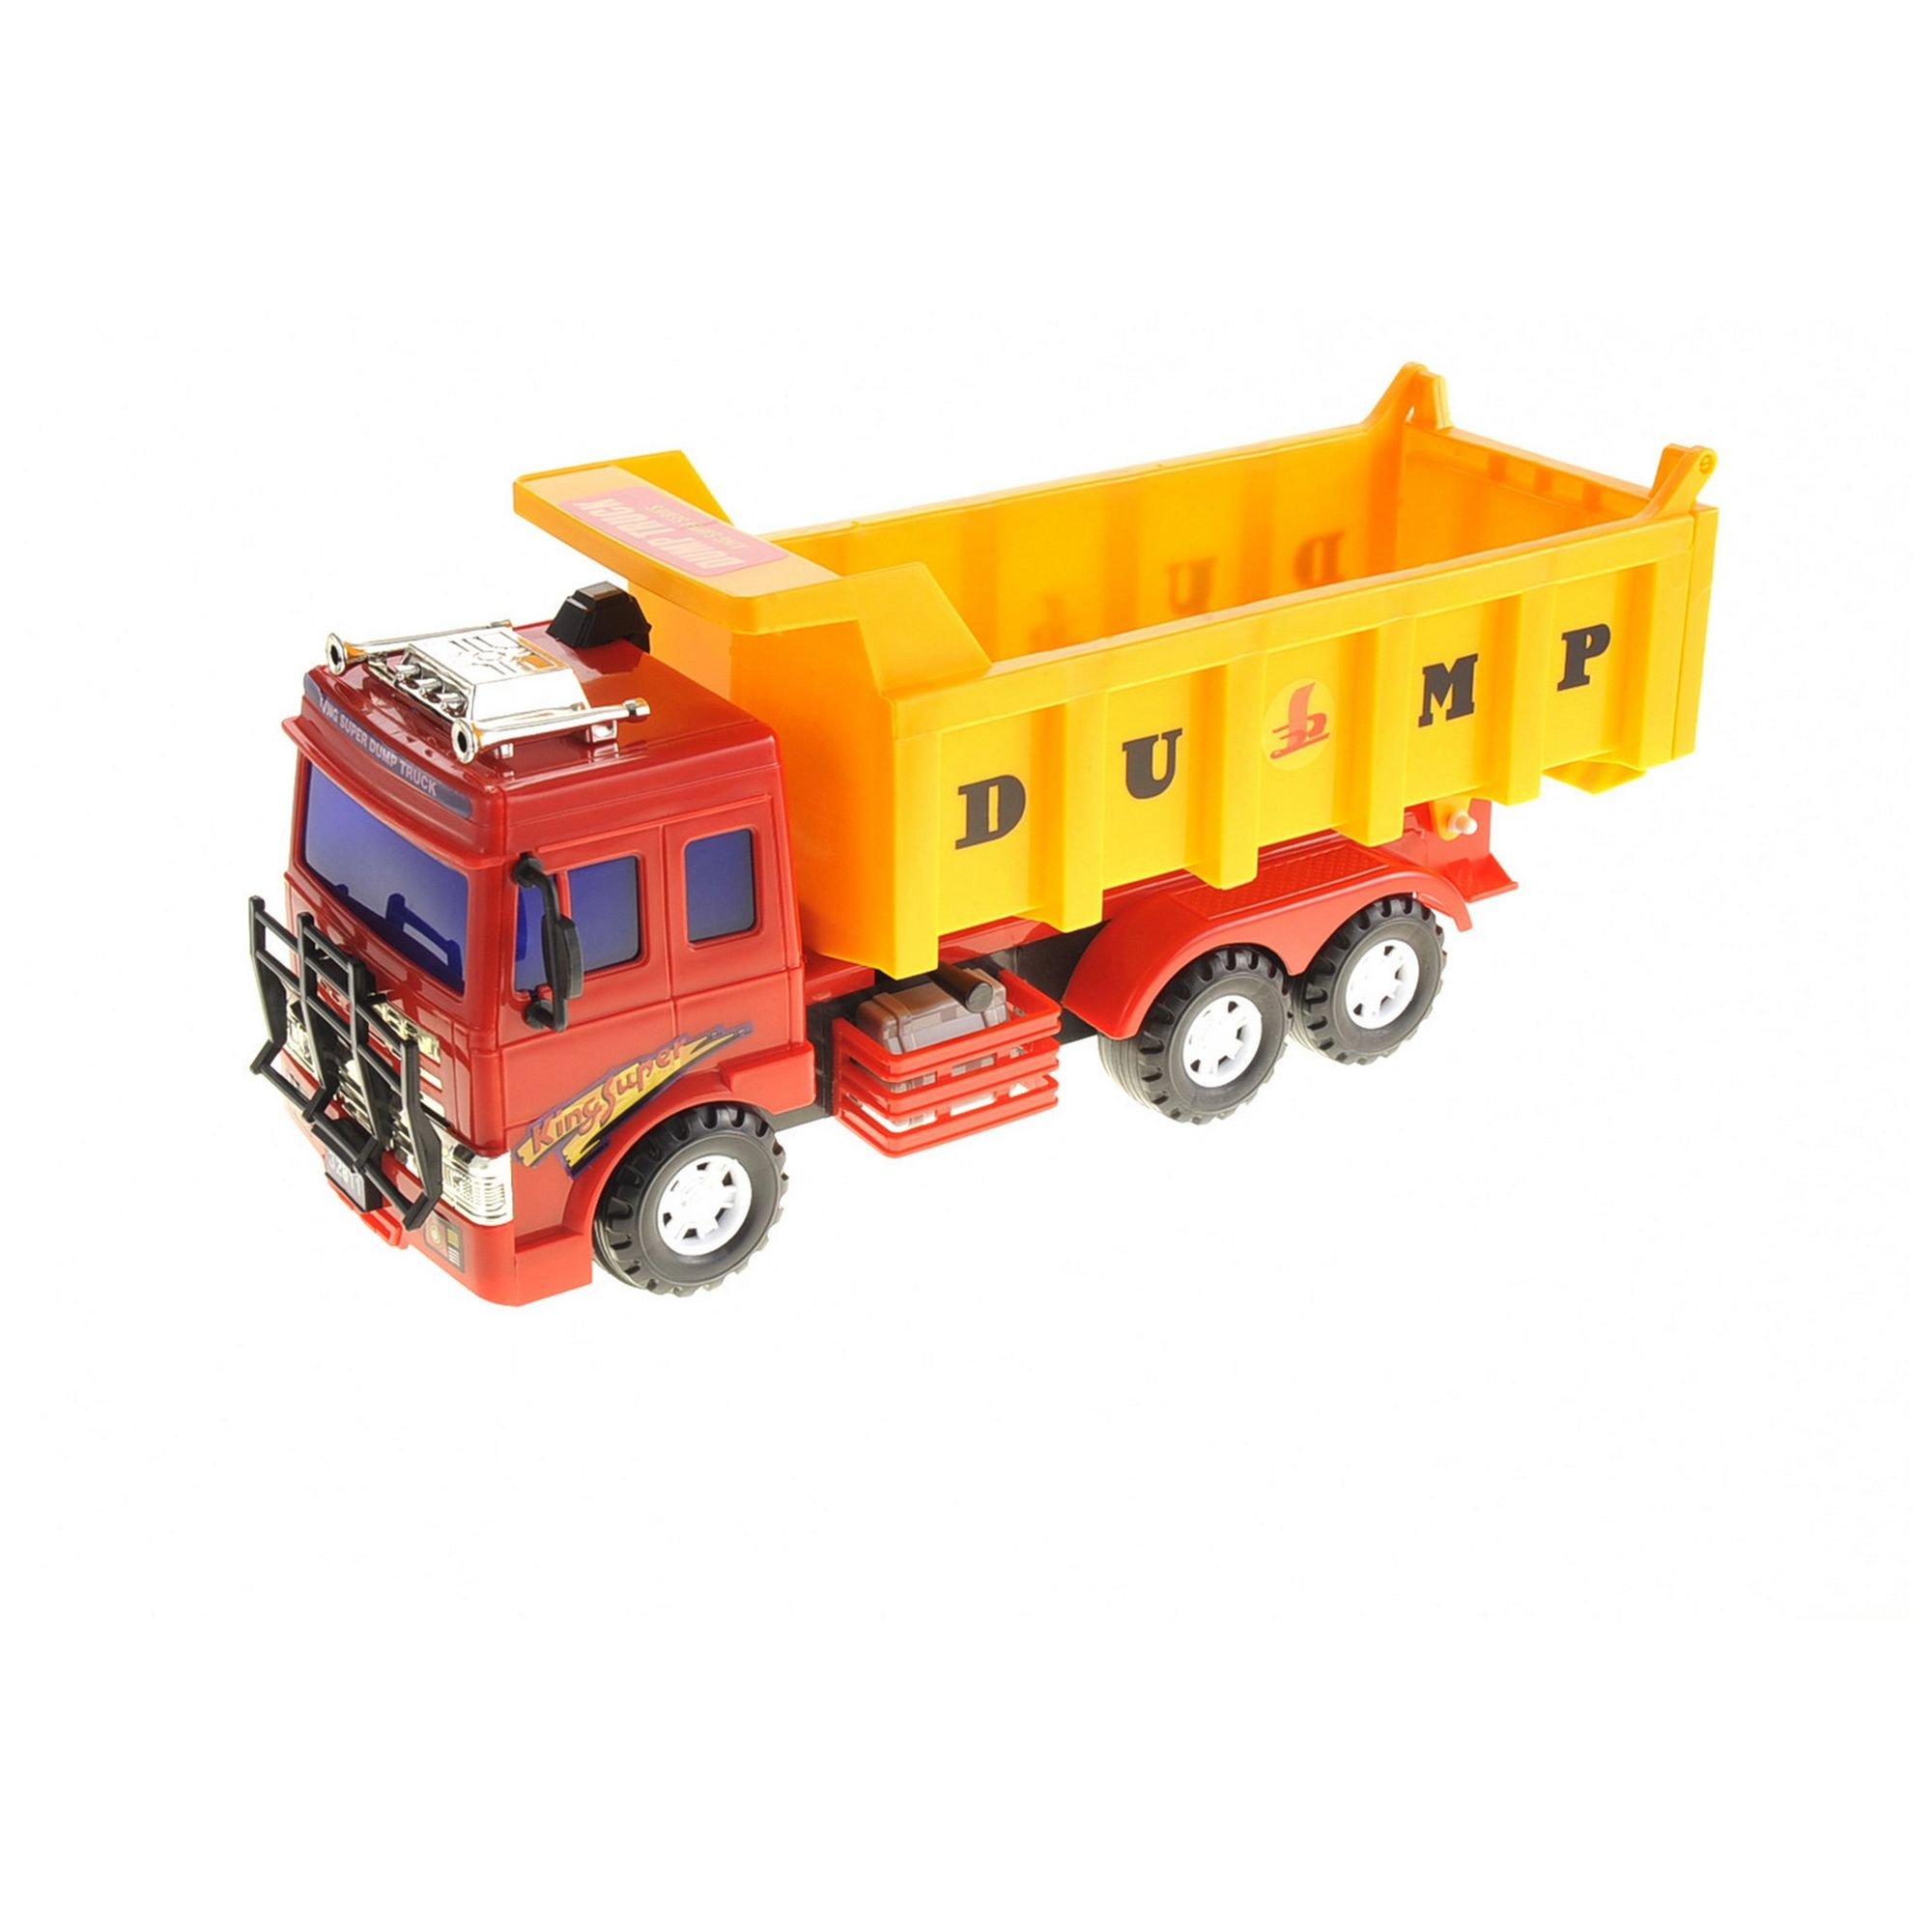 Big Dump Truck Toy For Kids With Friction Power Heavy